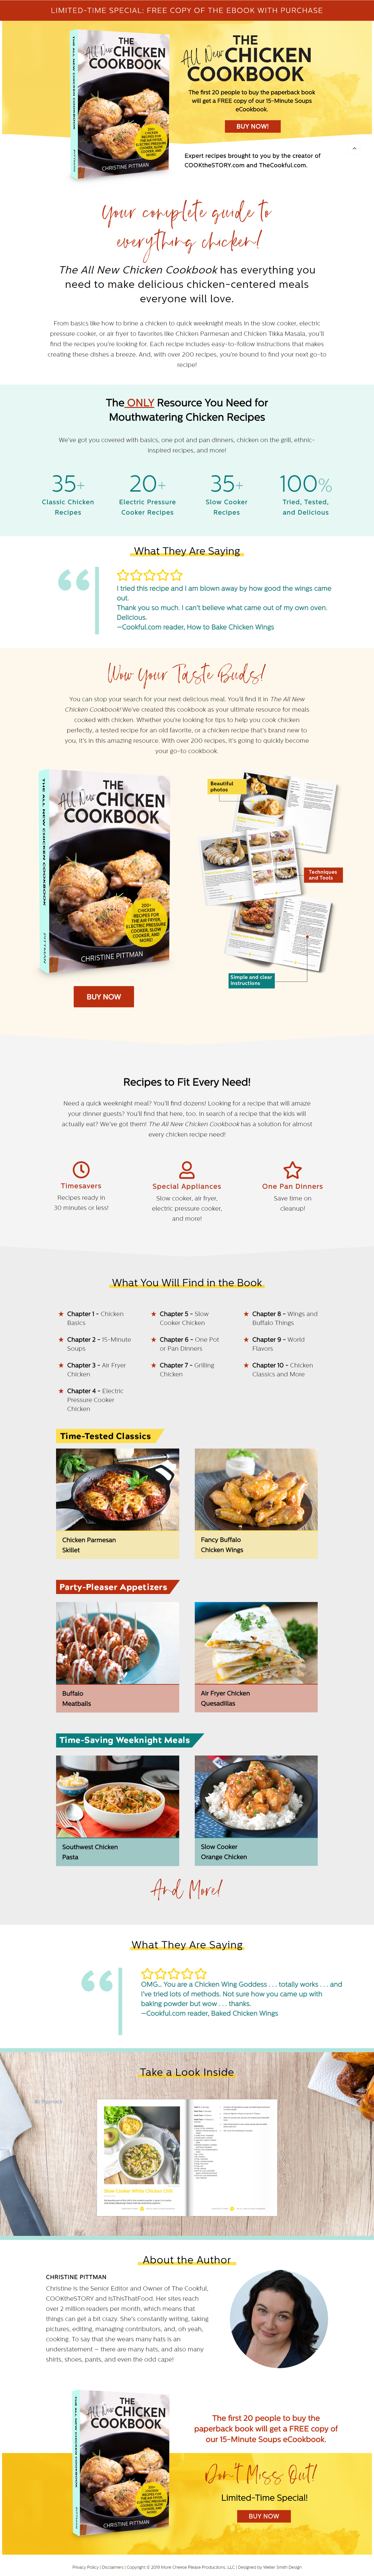 All New Chicken Cookbook Full Sales Page